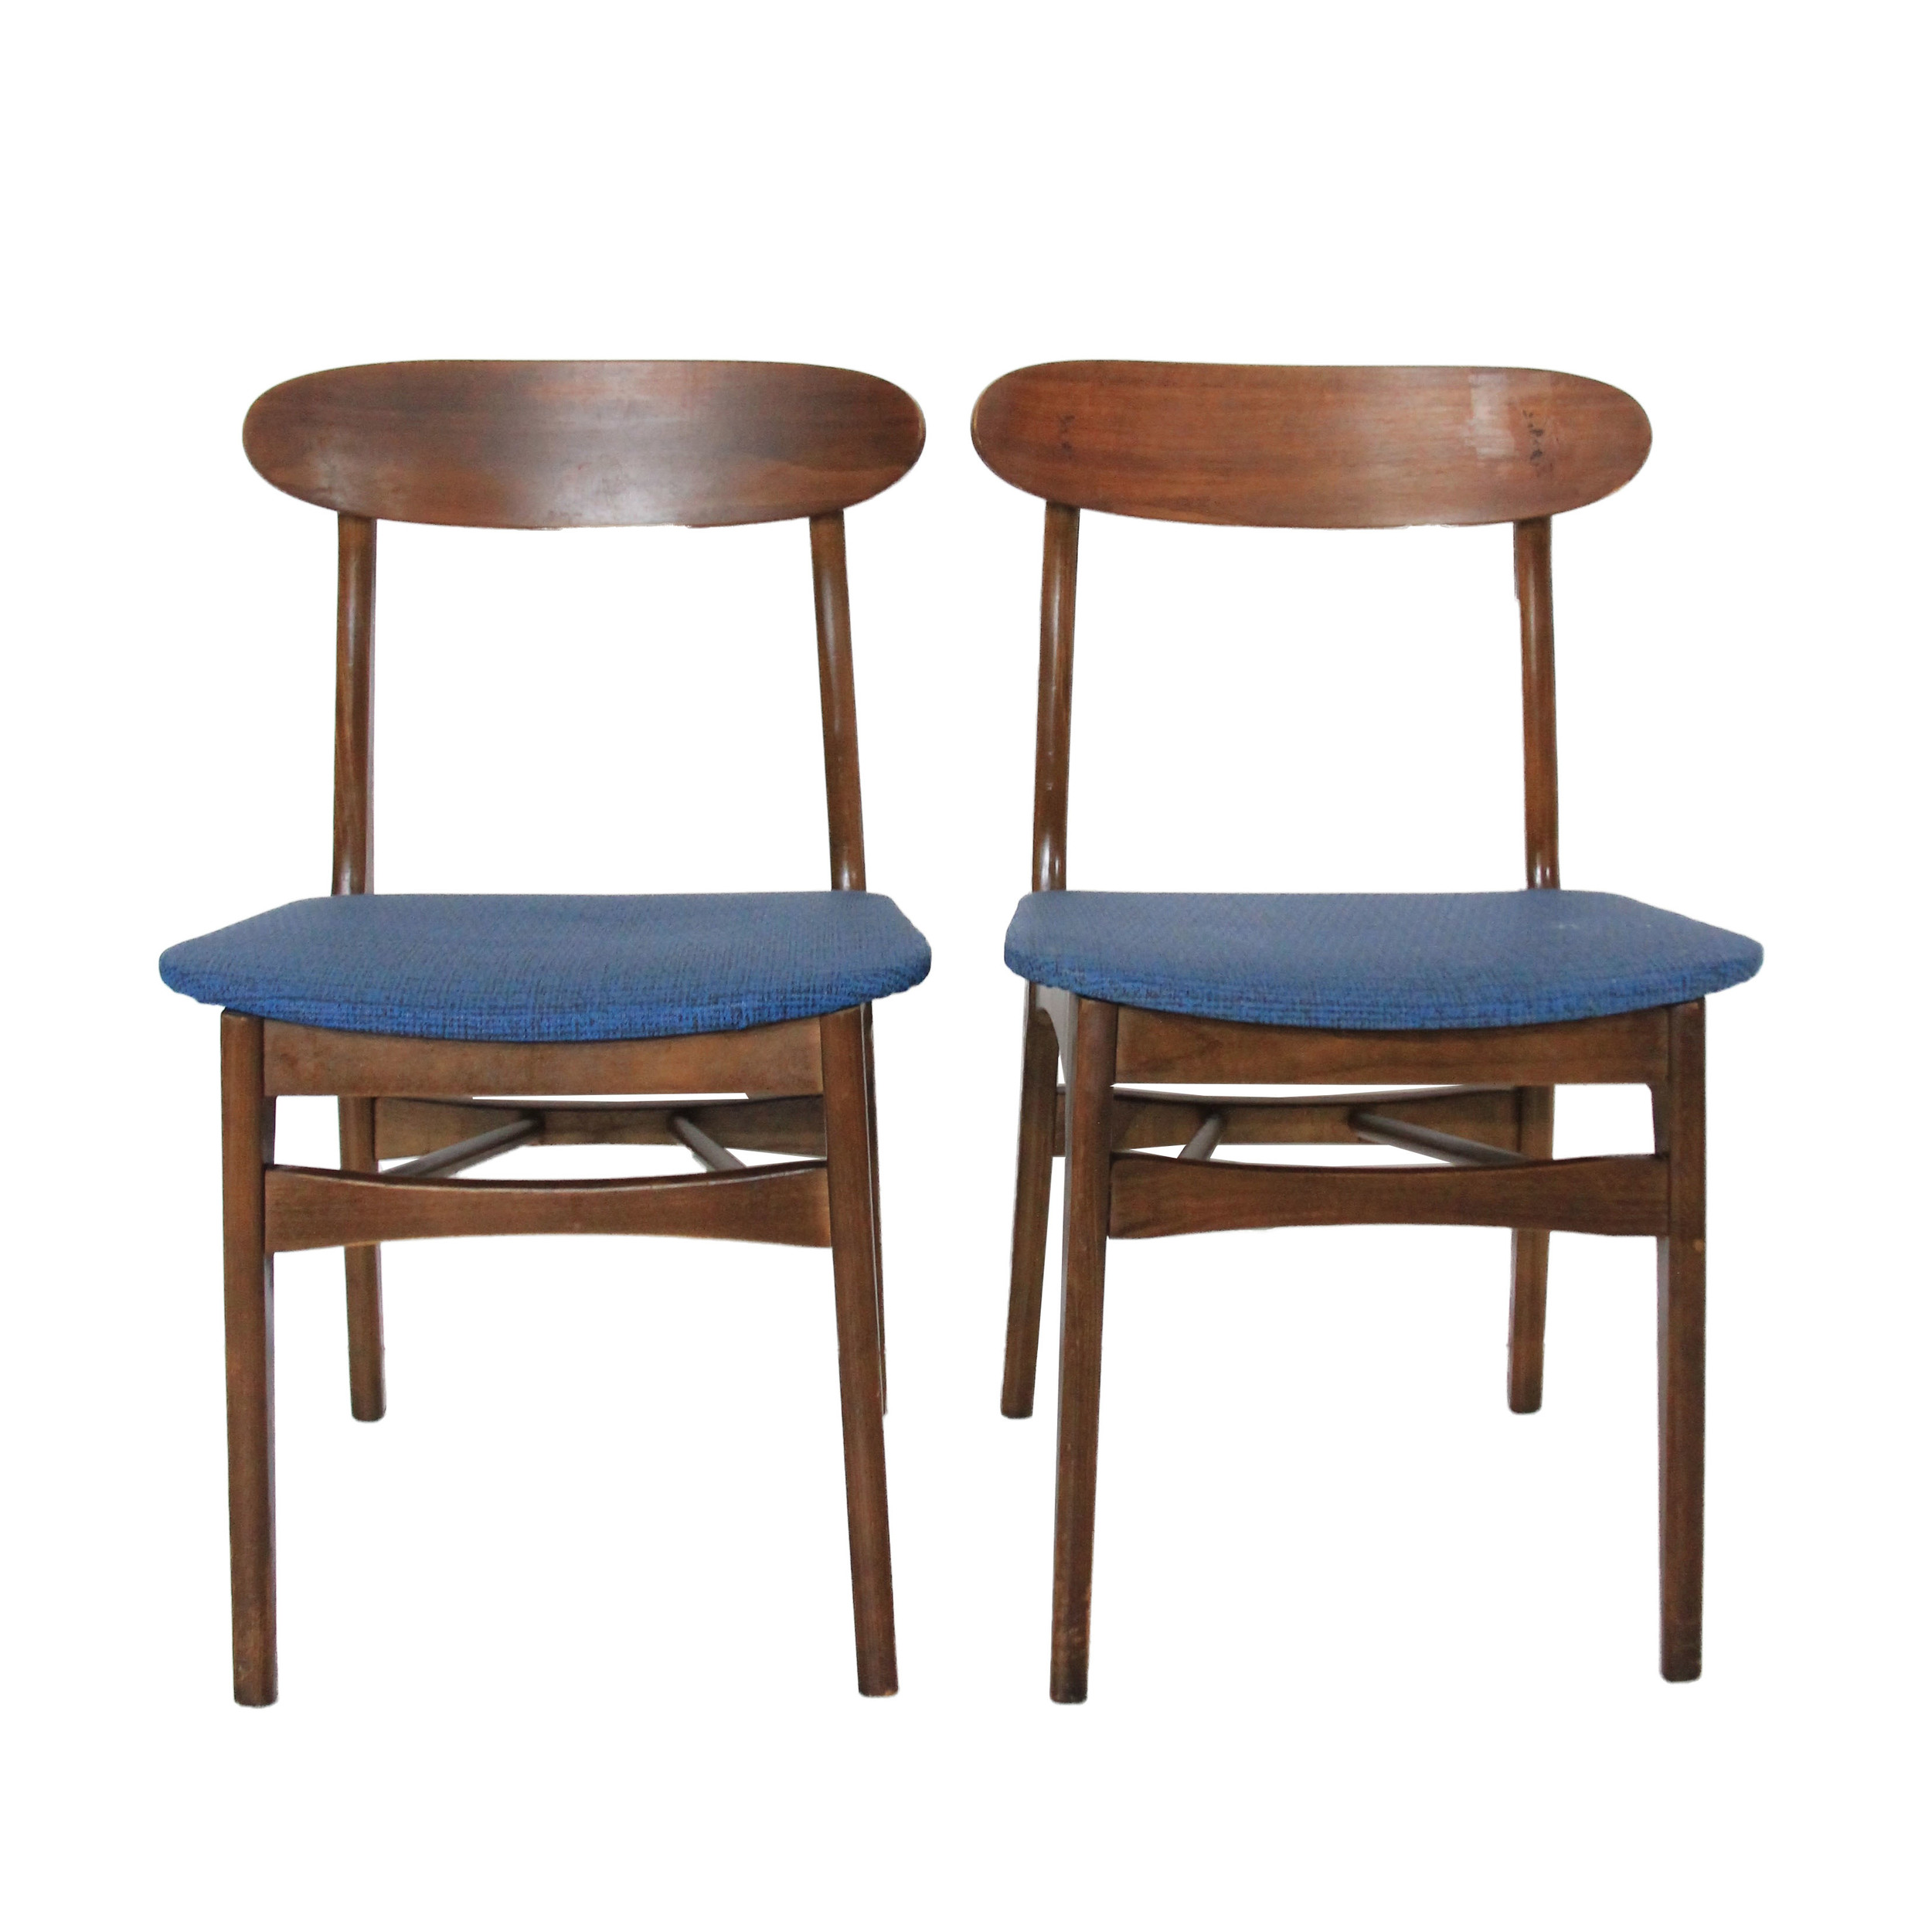 Vintage Mid Century Modern Pair of Dining Chairs